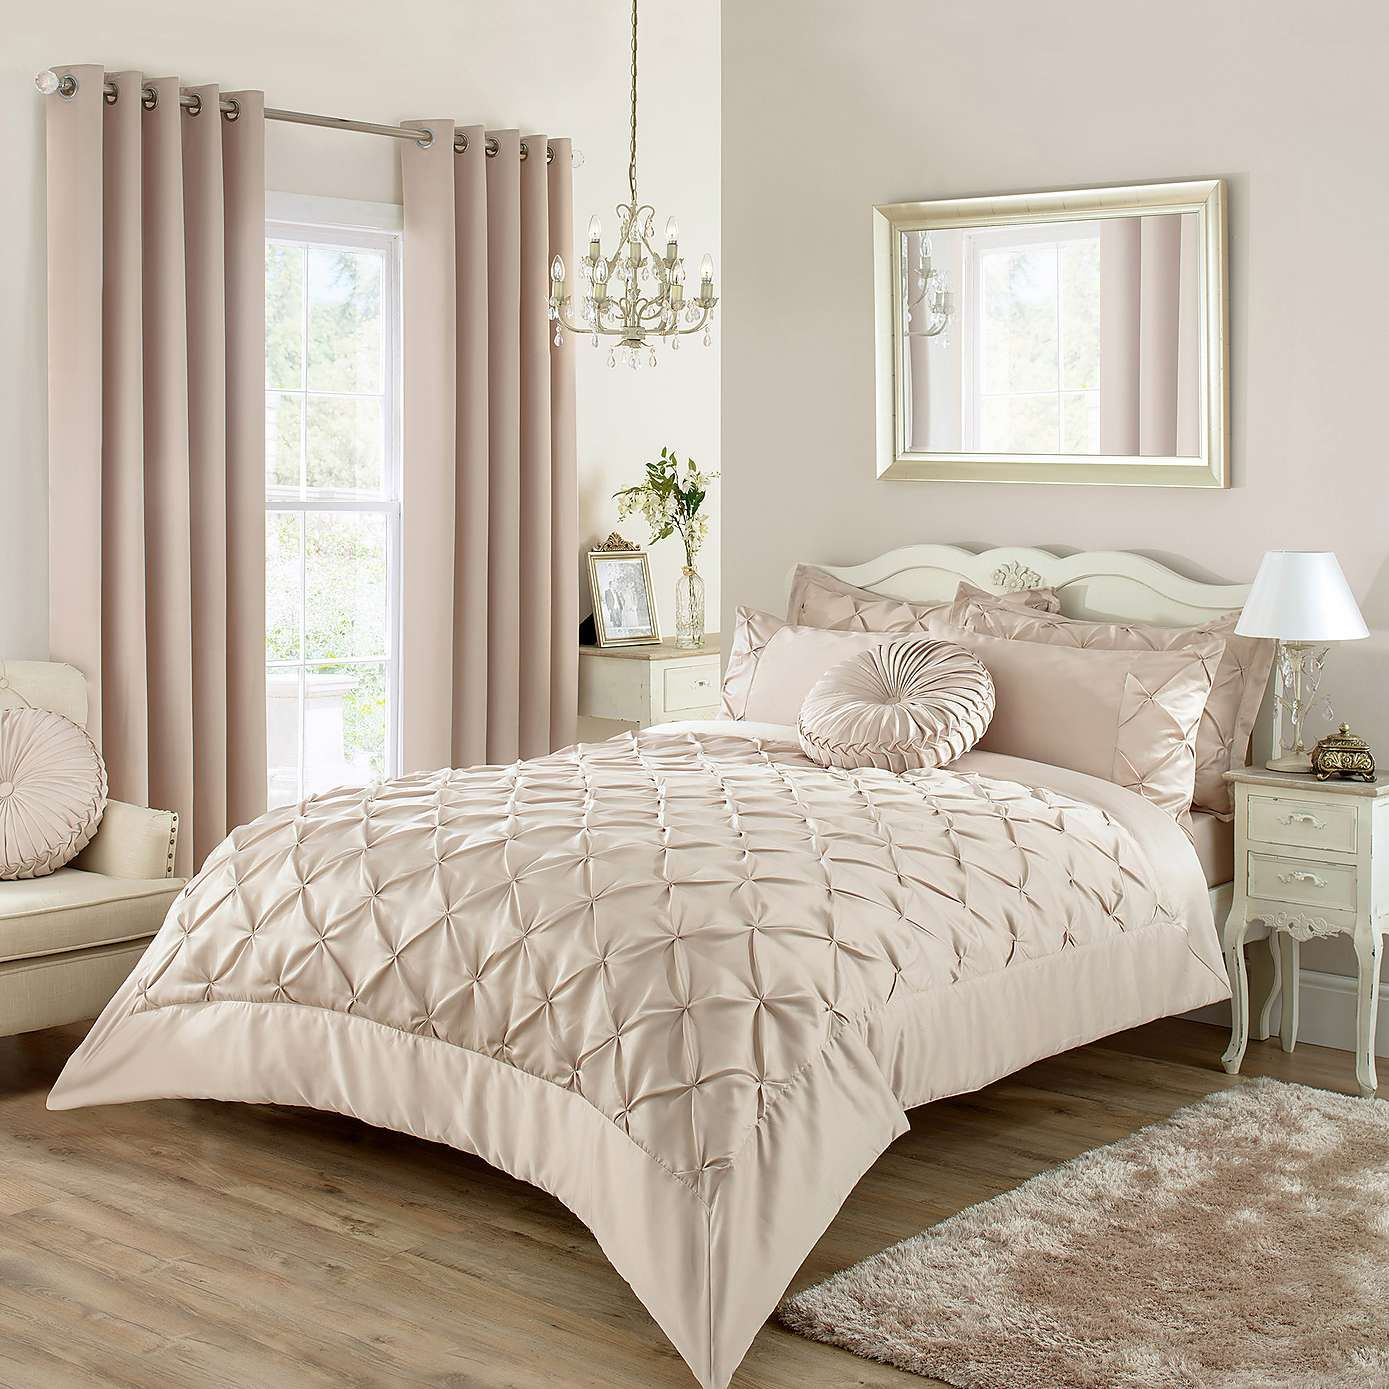 Champagne Karissa Bed Linen Collection Dunelm